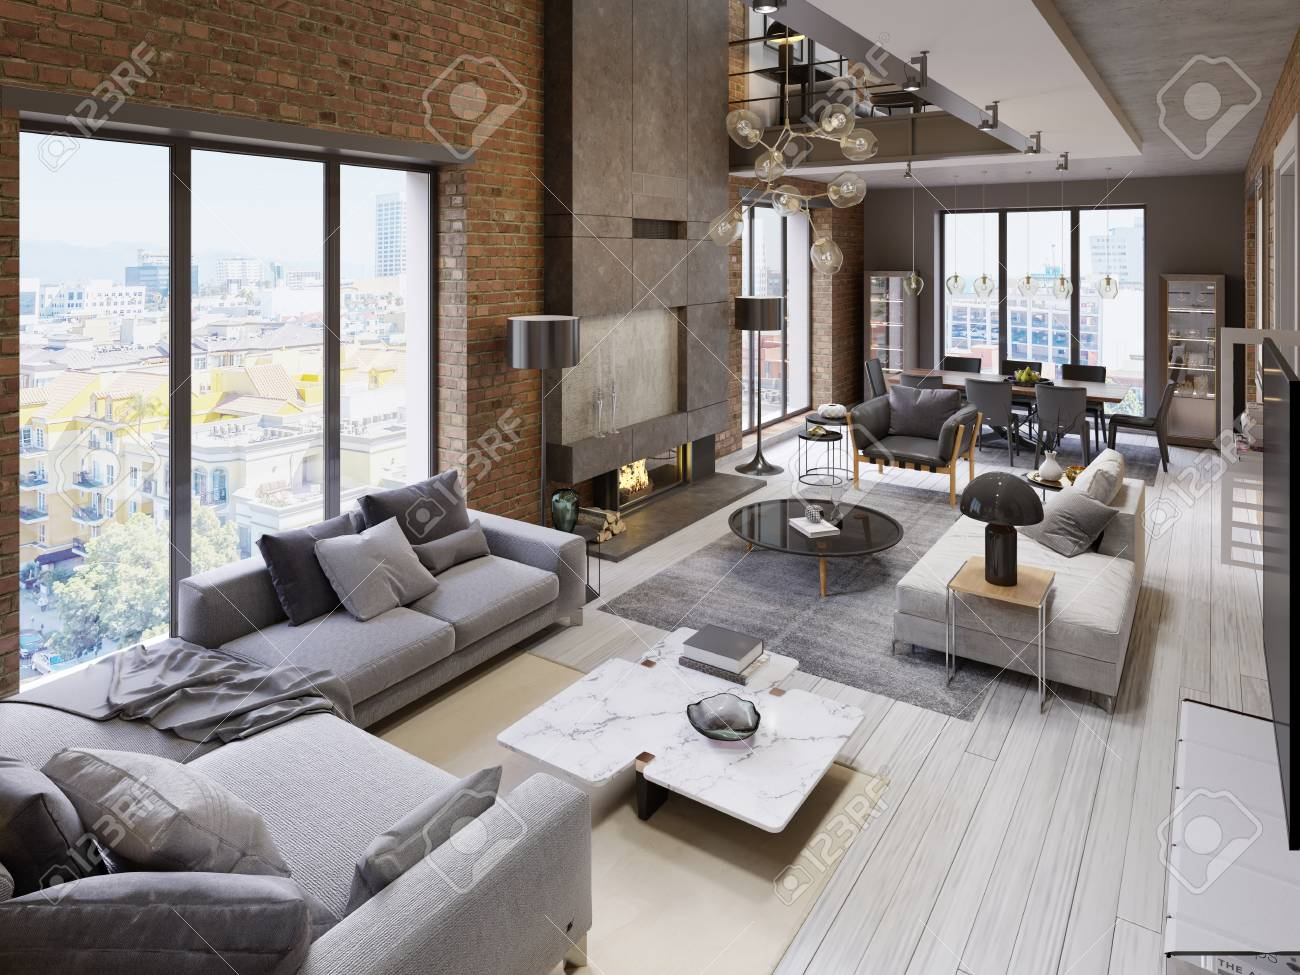 Large Modern Loft-style Apartment With Sofas, Armchair, Fireplace ...